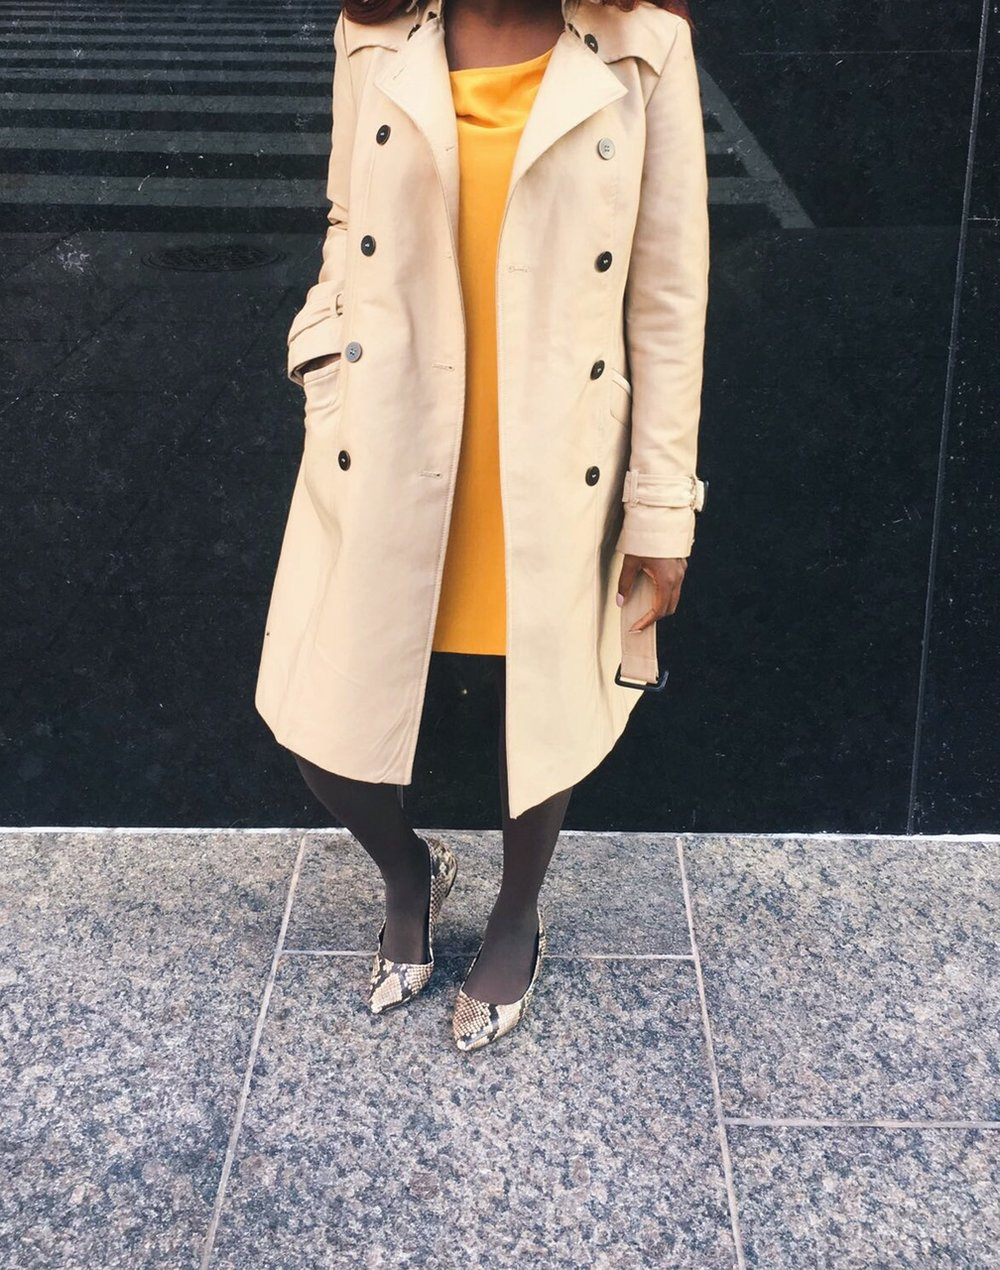 Working Woman Wednesday: Workplace Style on the Go - For those running-late days.